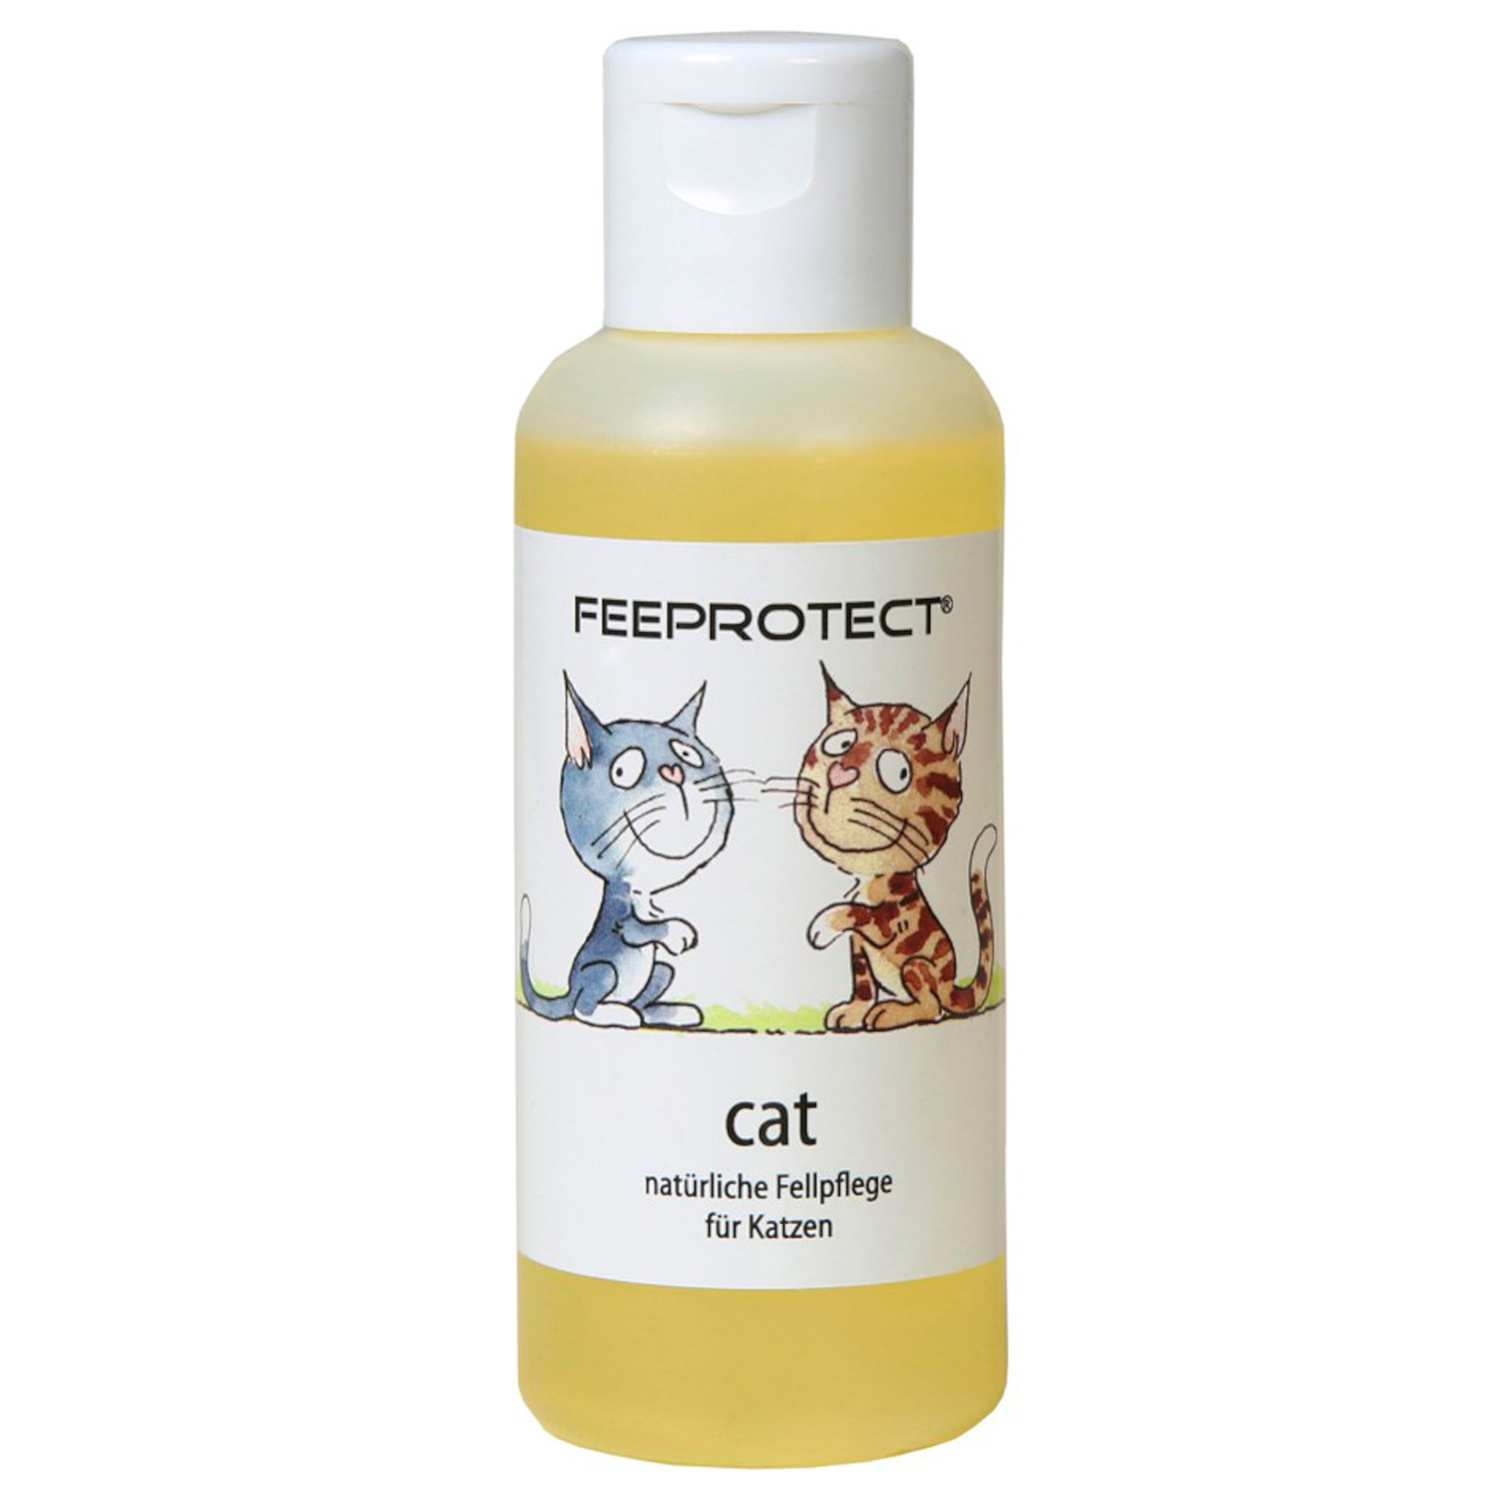 Feeprotect ® cat Fellpflege